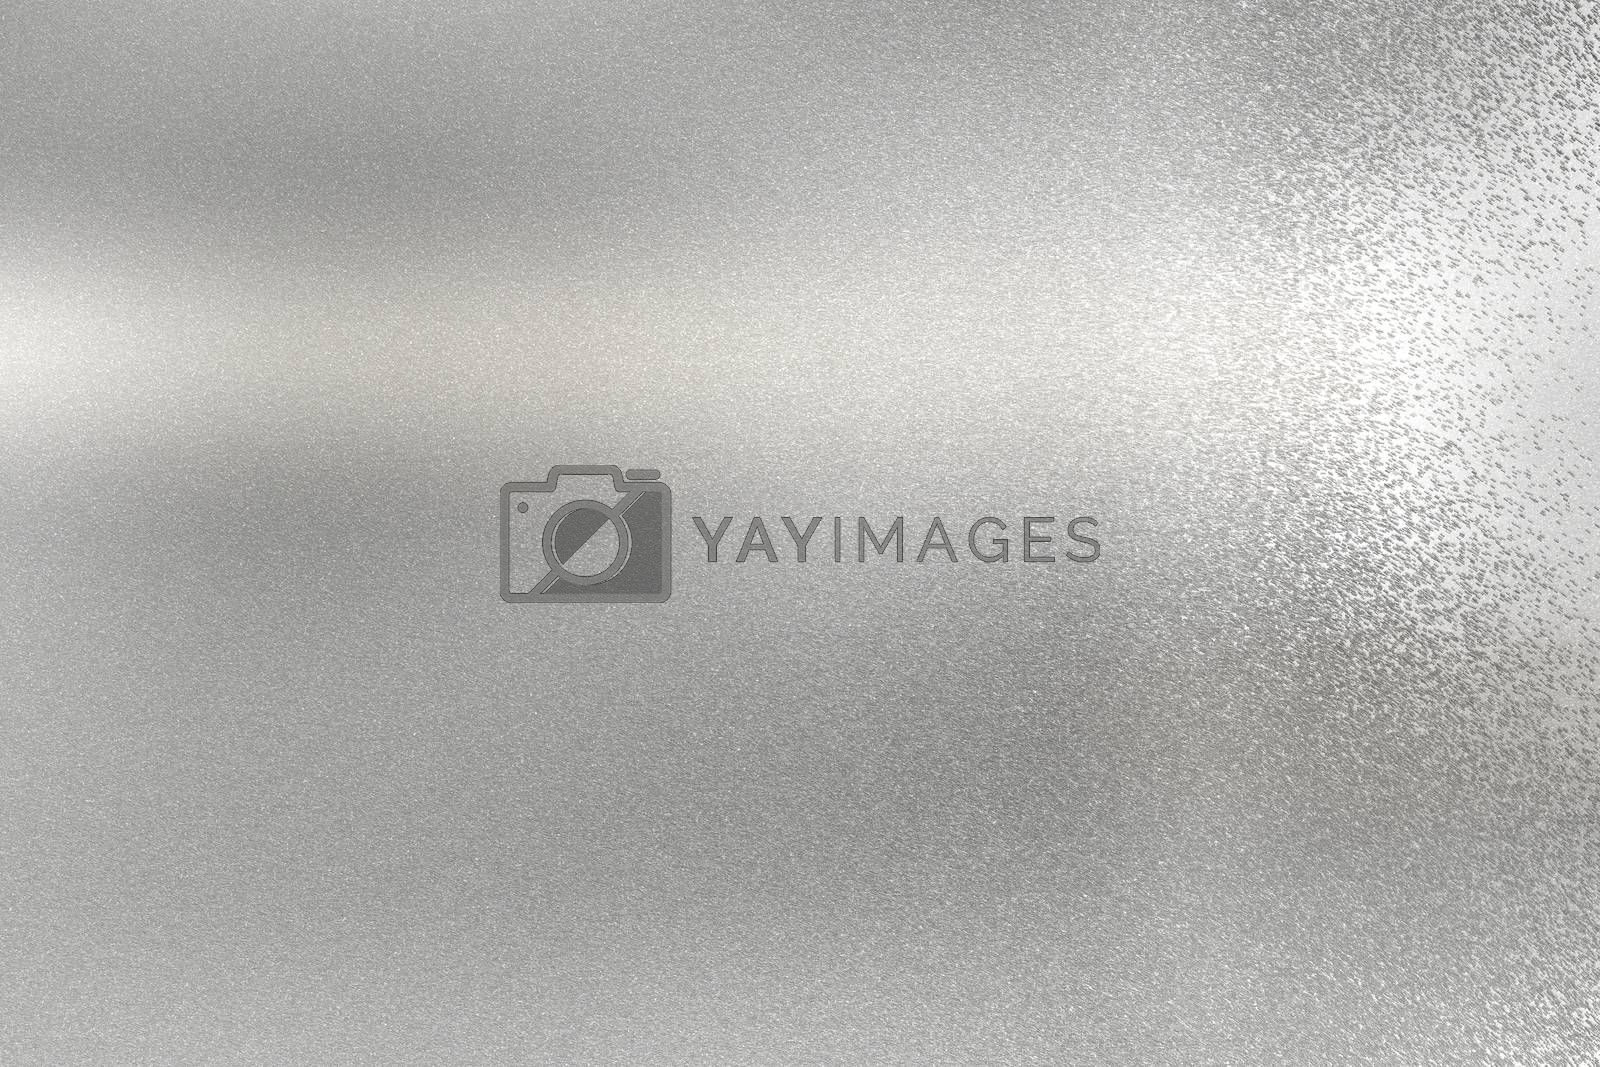 Brushed glossy silver metallic texture, abstract background by mouu007